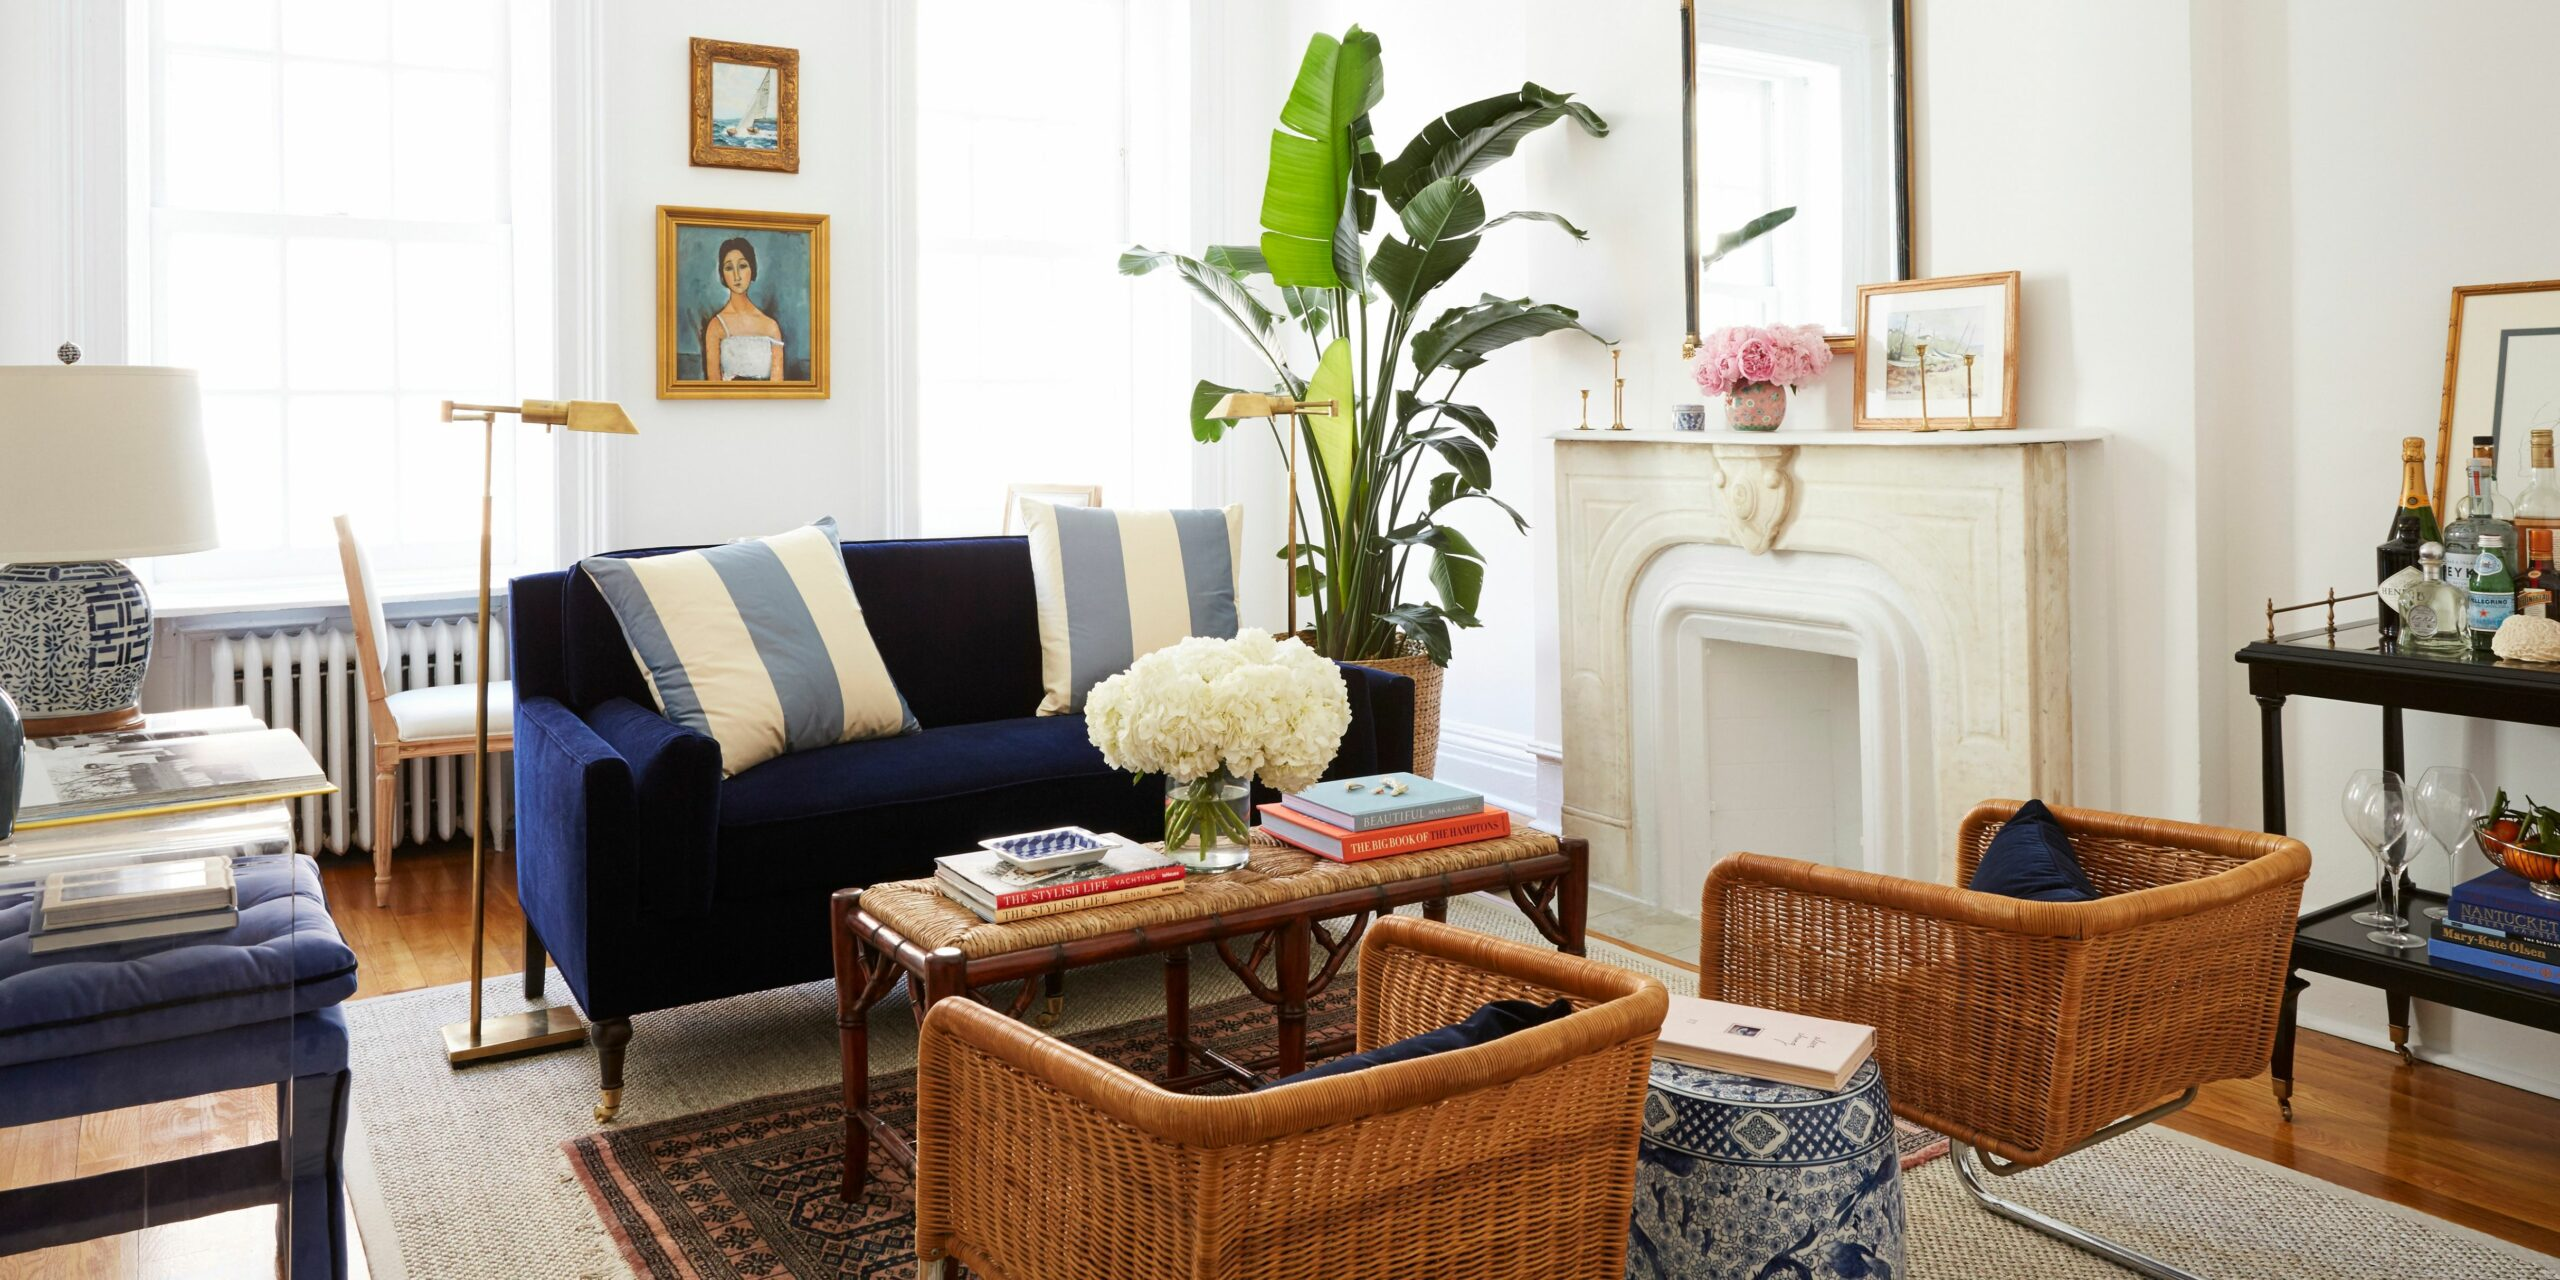 10 Small Living Room Ideas That Will Maximize Your Space ...